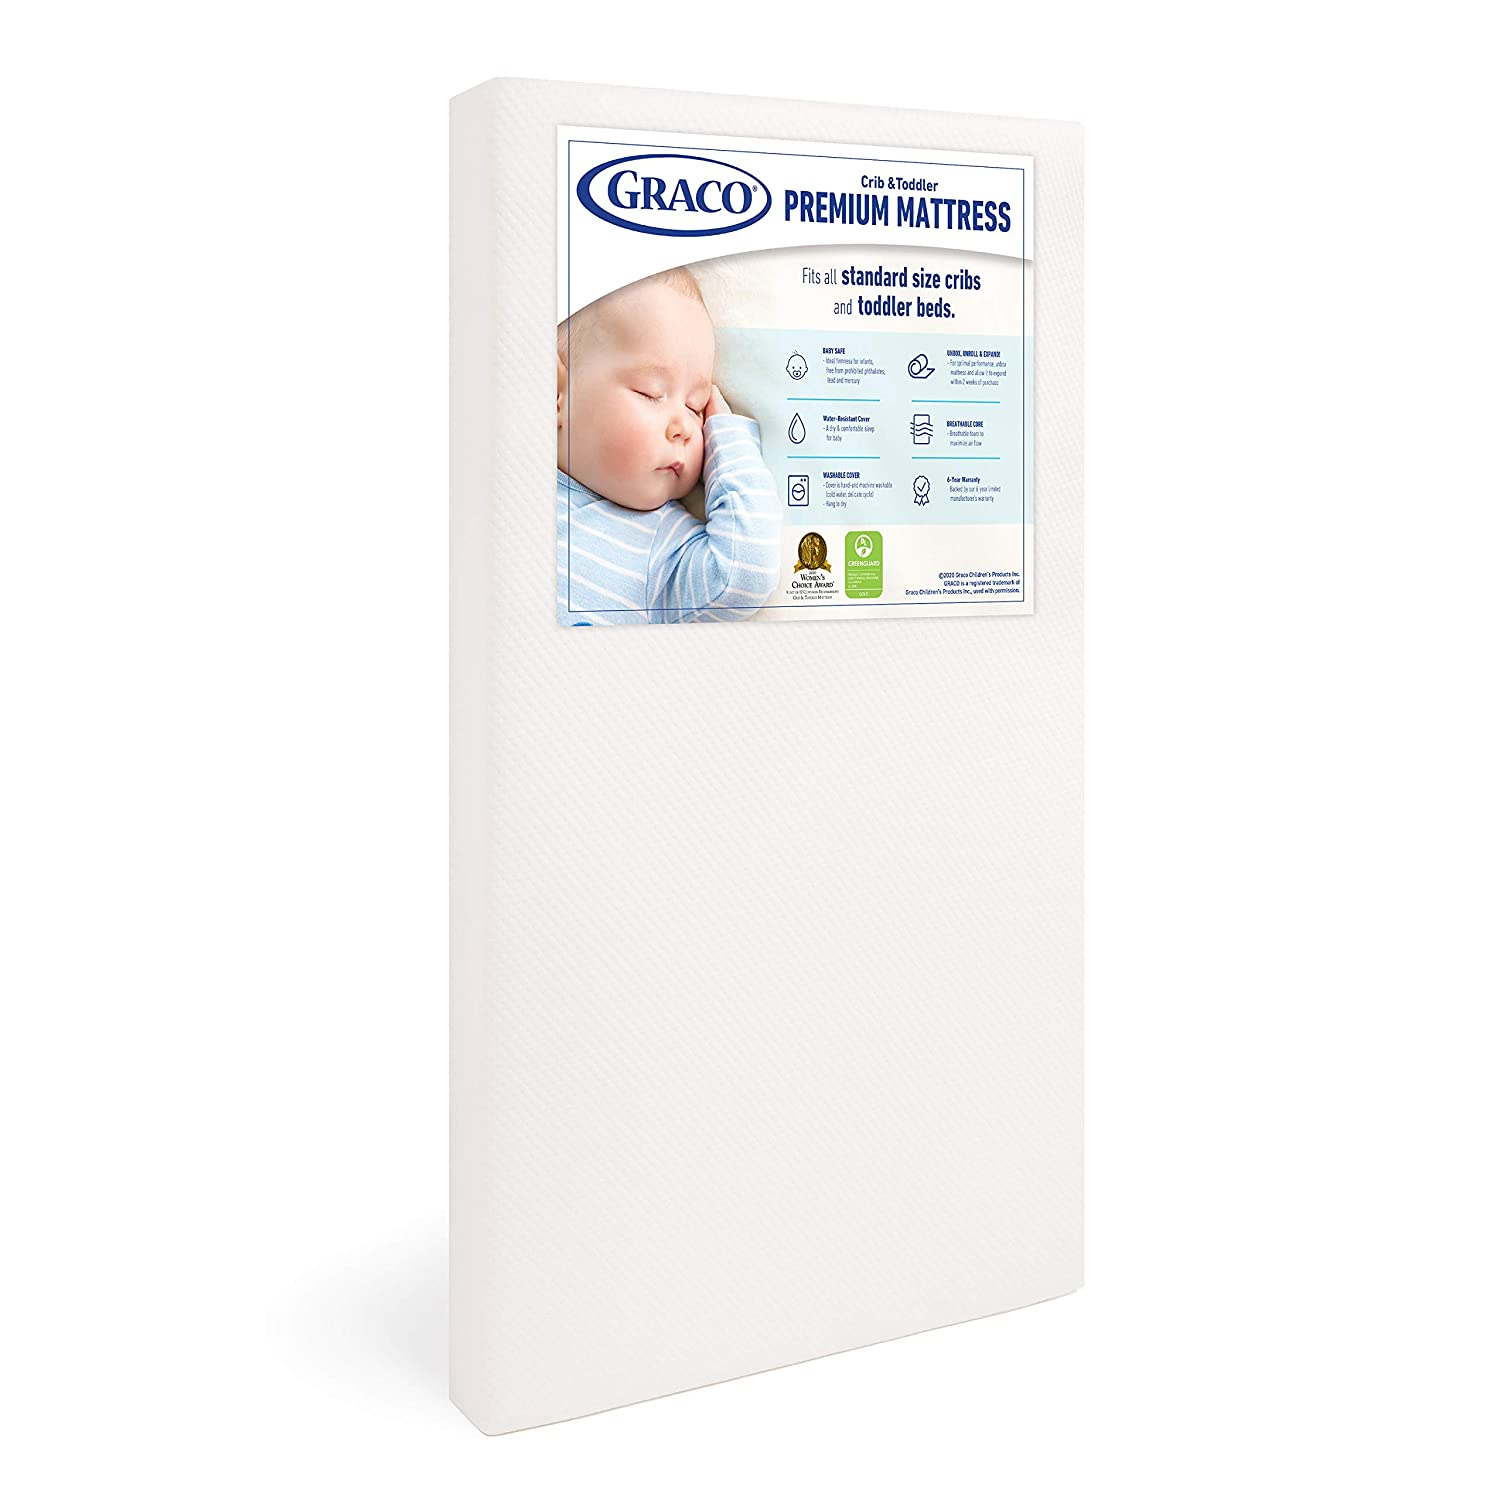 graco affordable memory foam toddler mattress